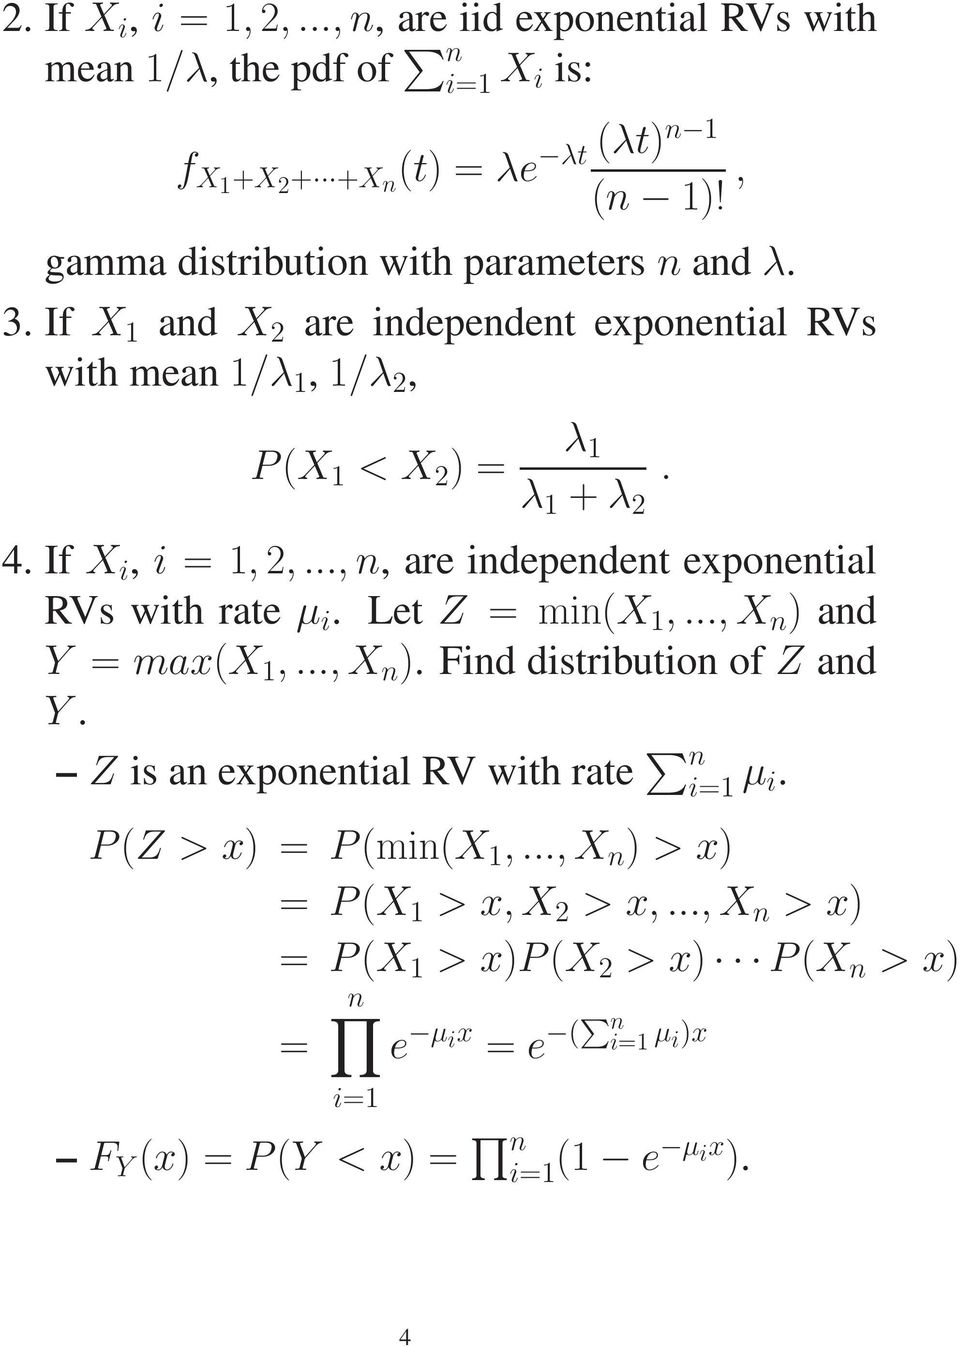 If X i, i = 1, 2,...,n, are independent exponential RVs with rate µ i. Let Z = min(x 1,...,X n ) and Y = max(x 1,...,X n ). Find distribution of Z and Y.